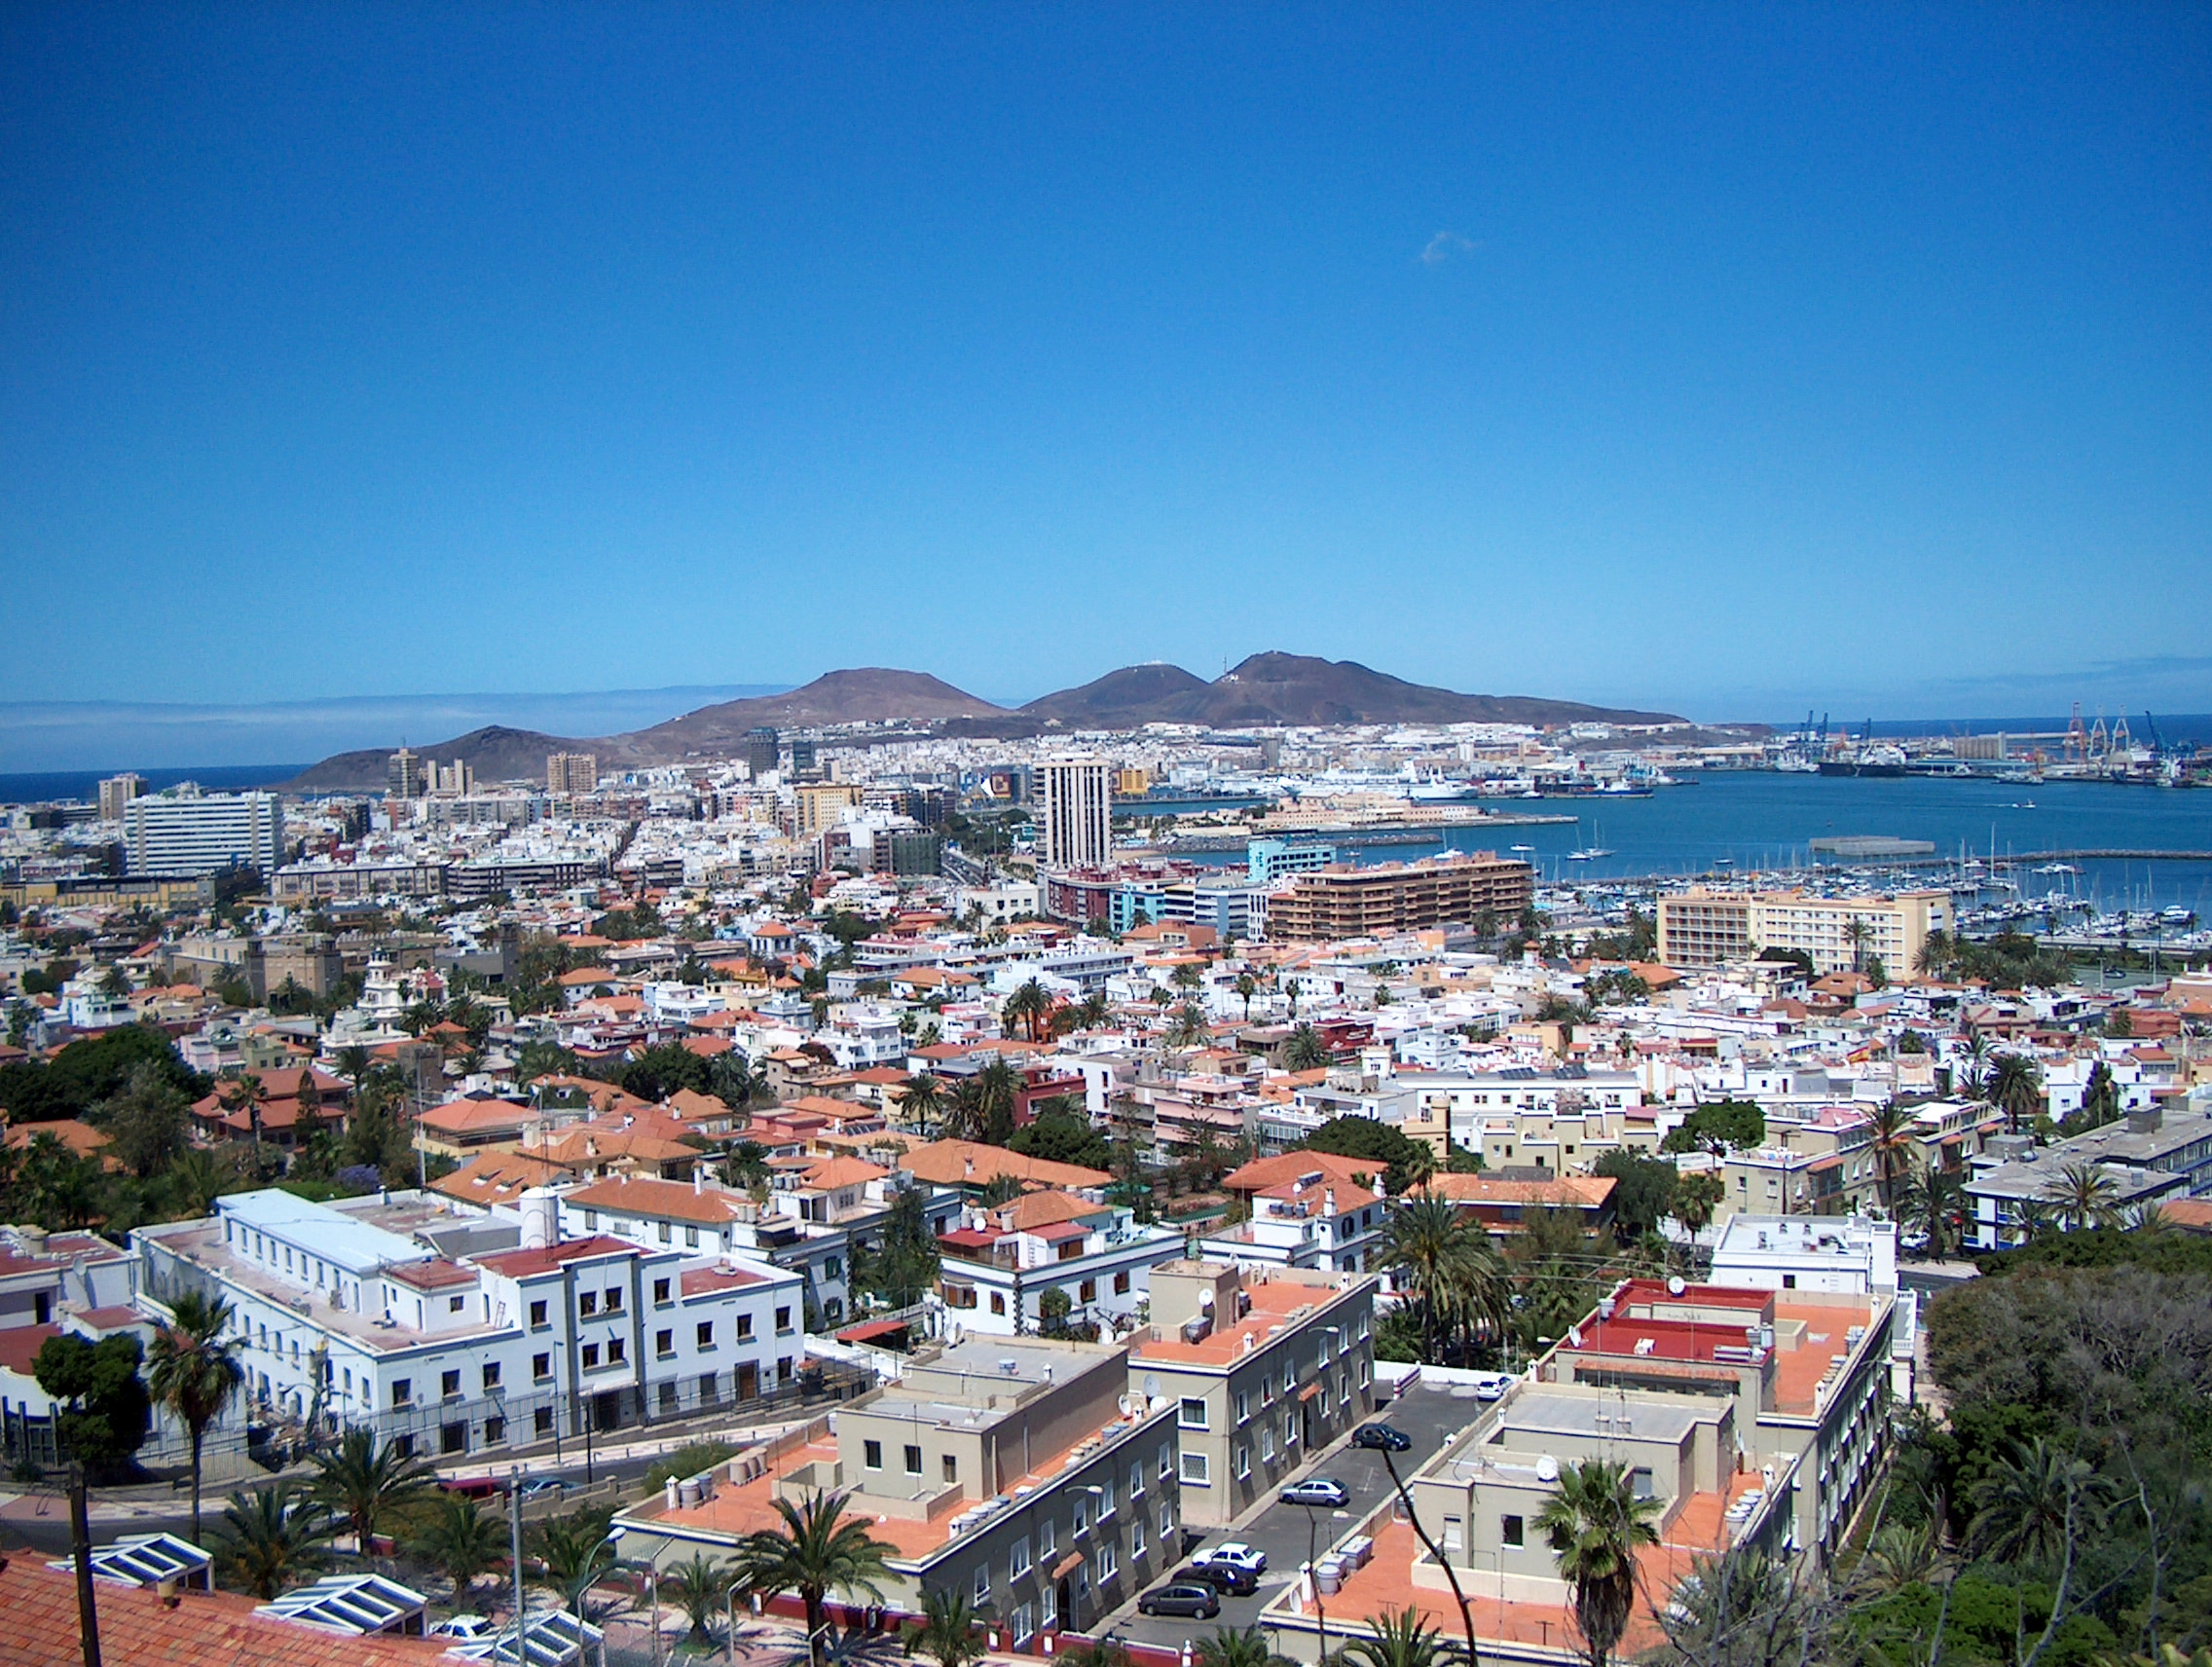 Las_Palmas_de_Gran_Canaria-Panoramic_view_over_the_city Double-Barrelled Travel